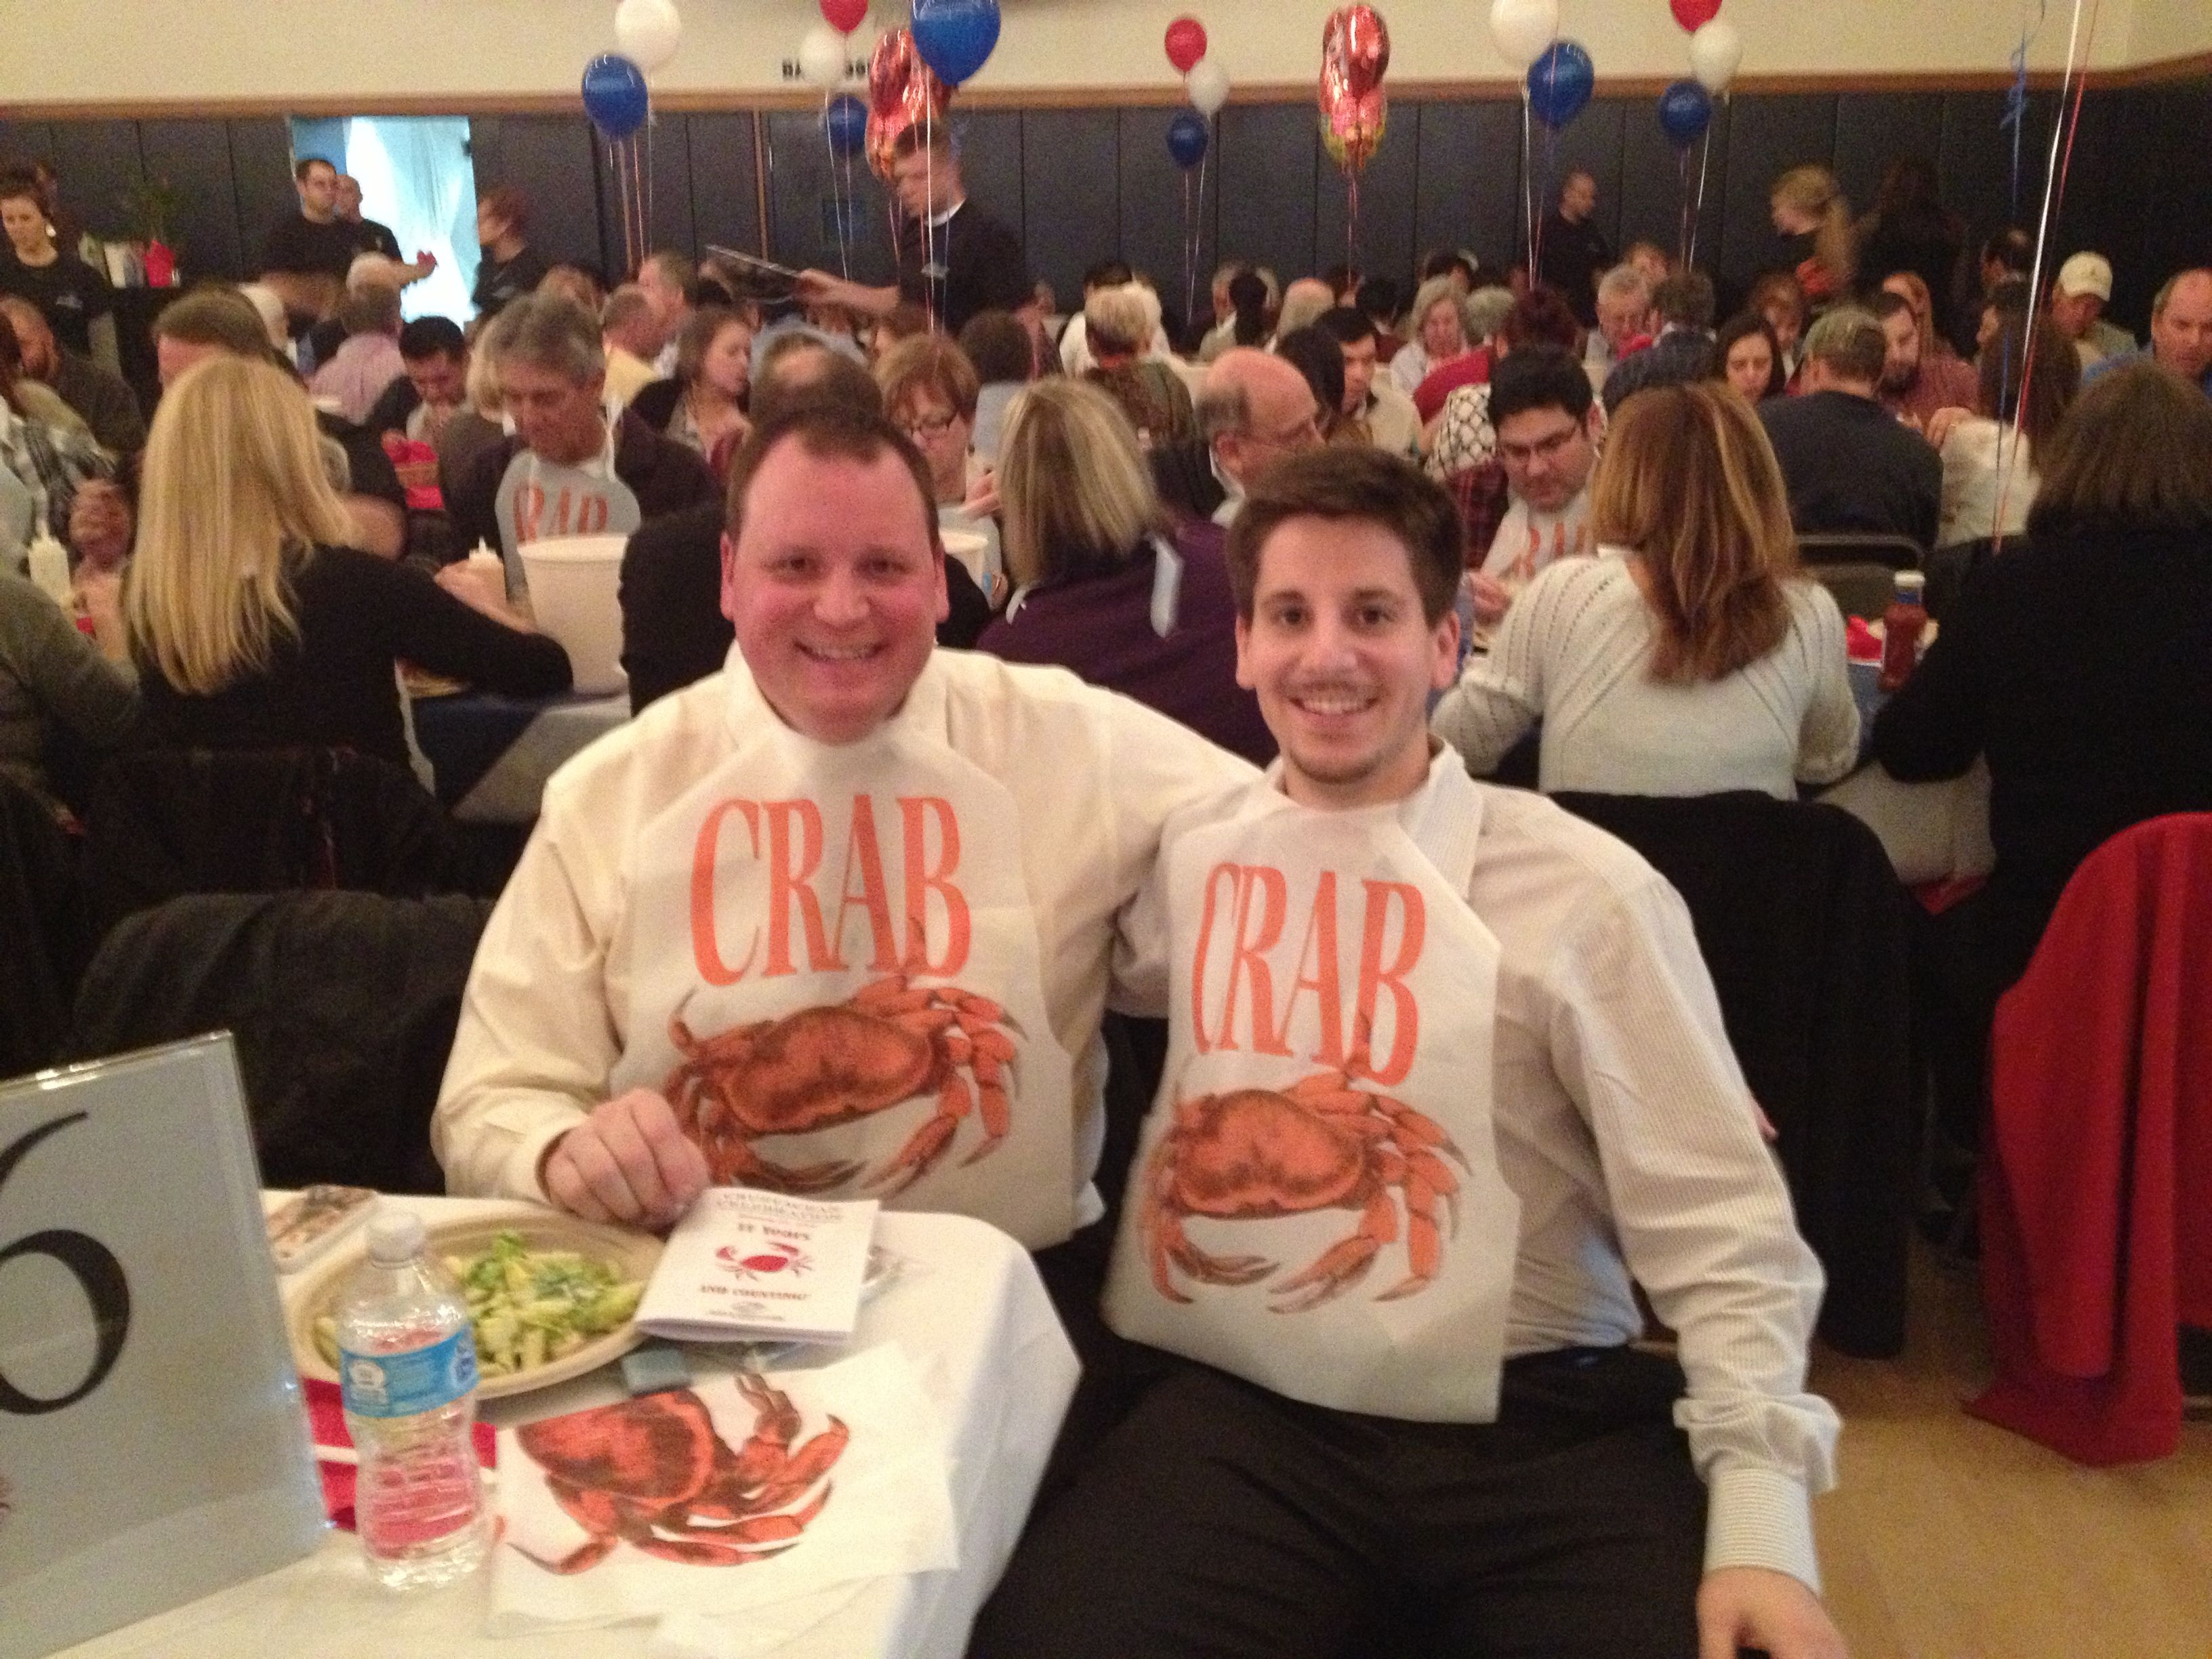 Hanging with George Haris from Assemblyman Levine's Office in support of the Boys & Girls Club at their 11th Annual Crab Feed fundraiser.